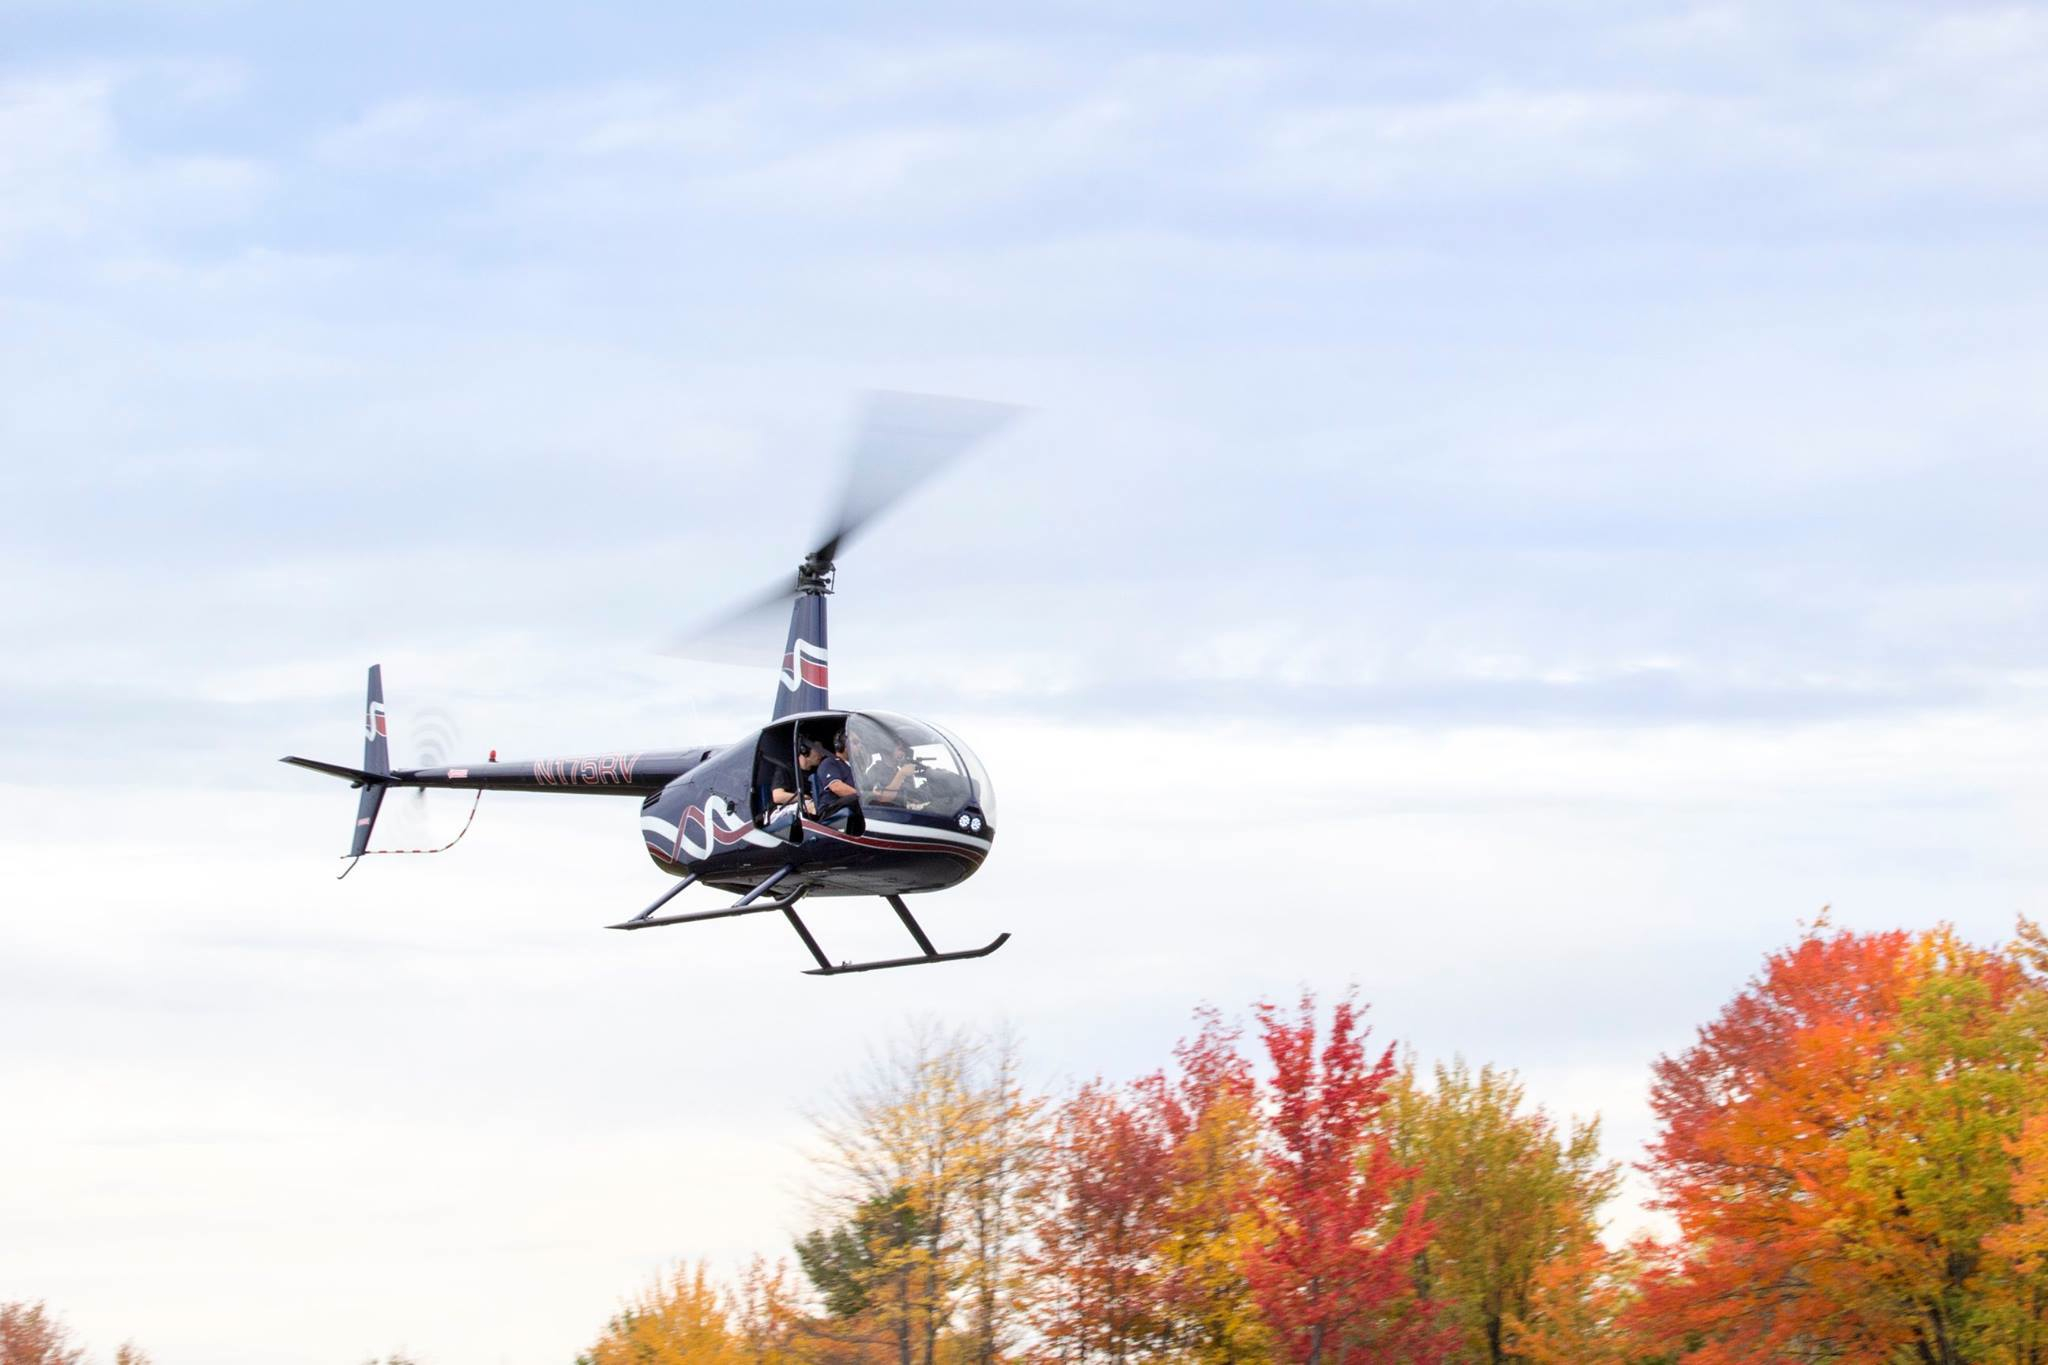 helicopter flying over fall foliage environment